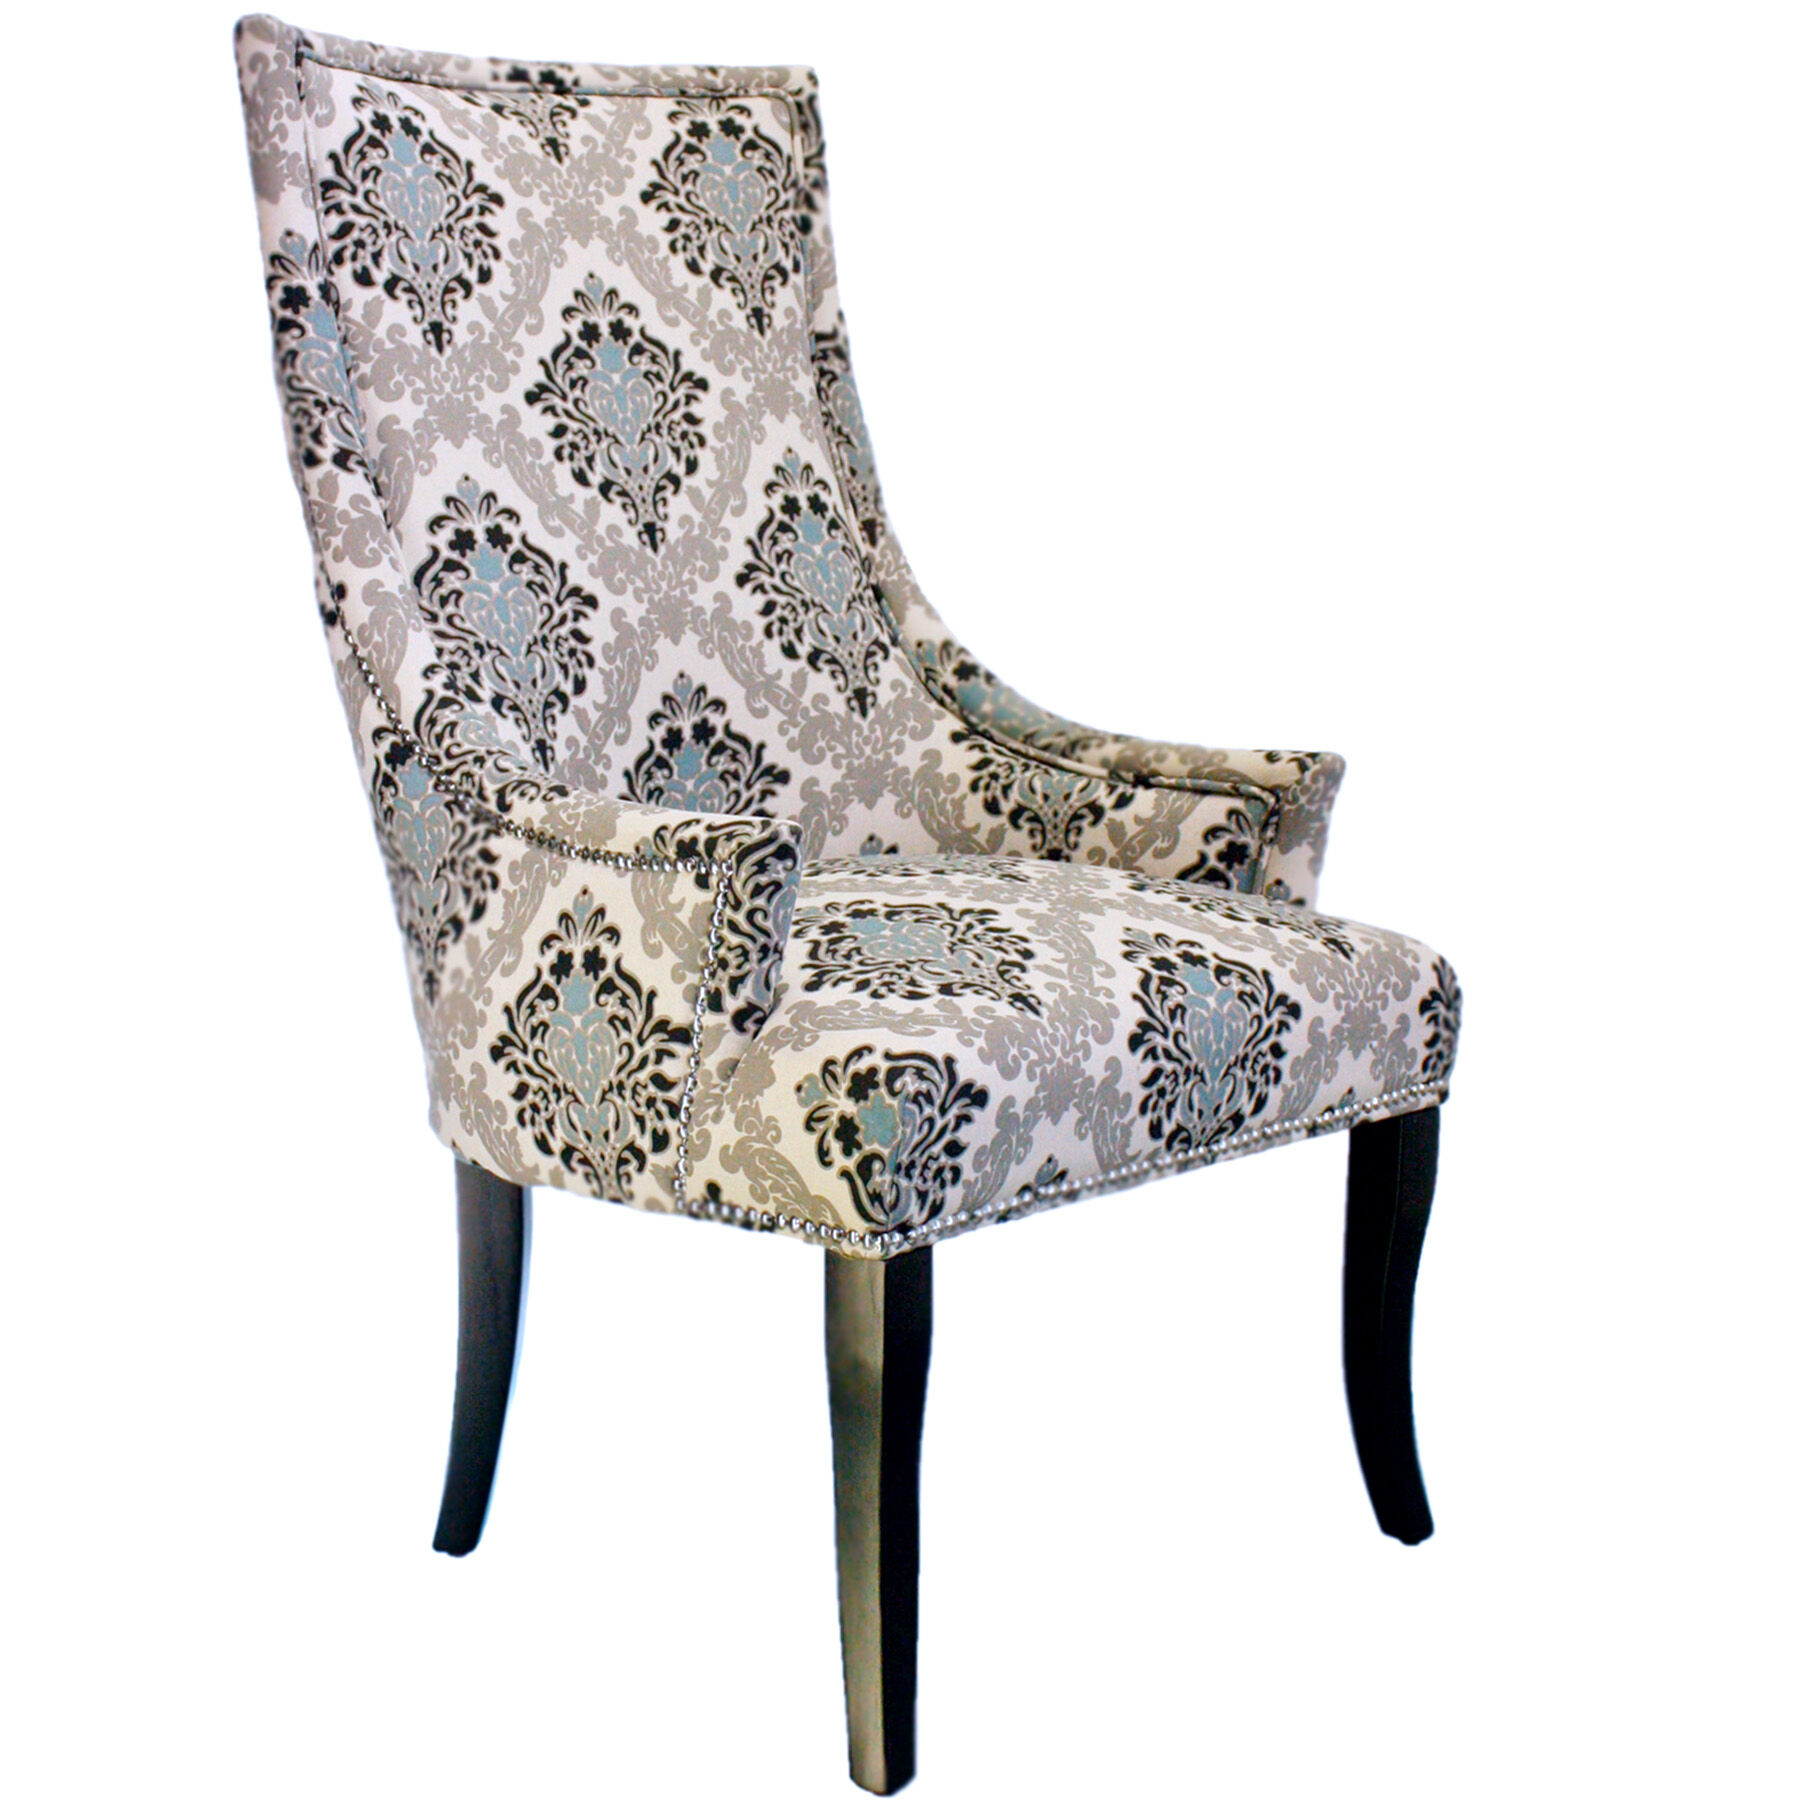 Damask Chair Chatham Chair Damask At Home